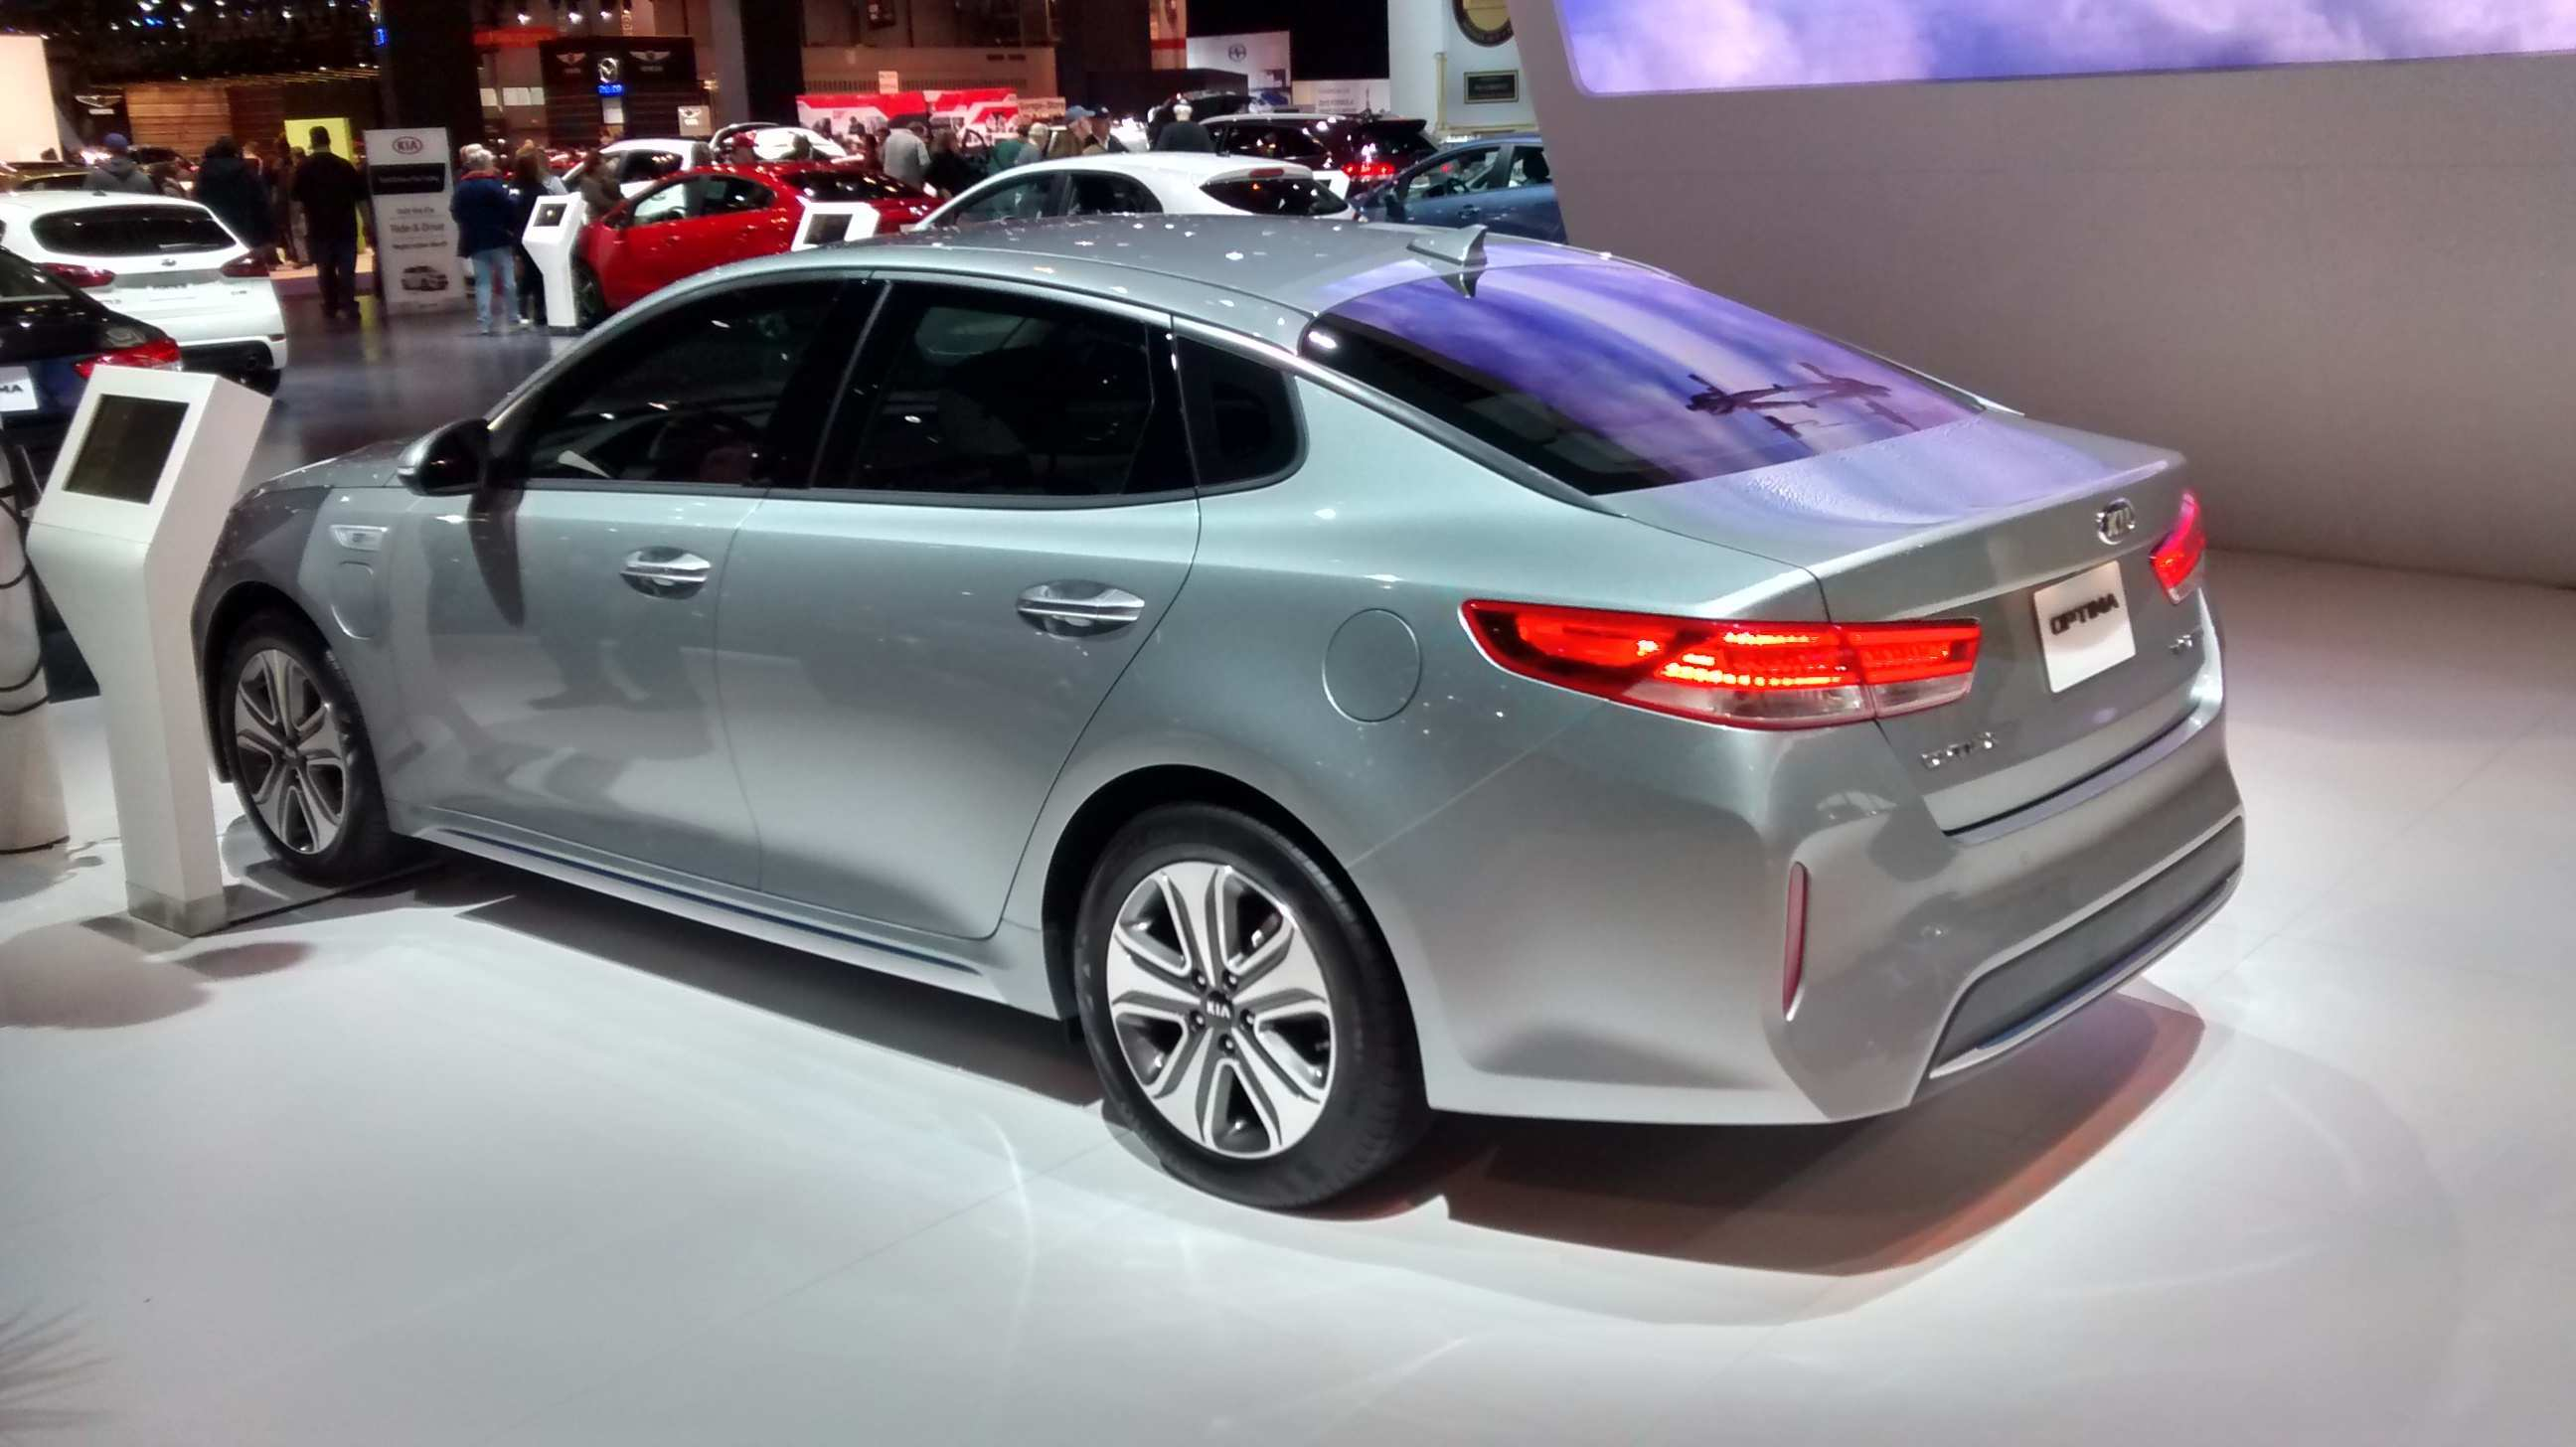 49 All New 2020 Kia Optima Plug In Hybrid Redesign for 2020 Kia Optima Plug In Hybrid